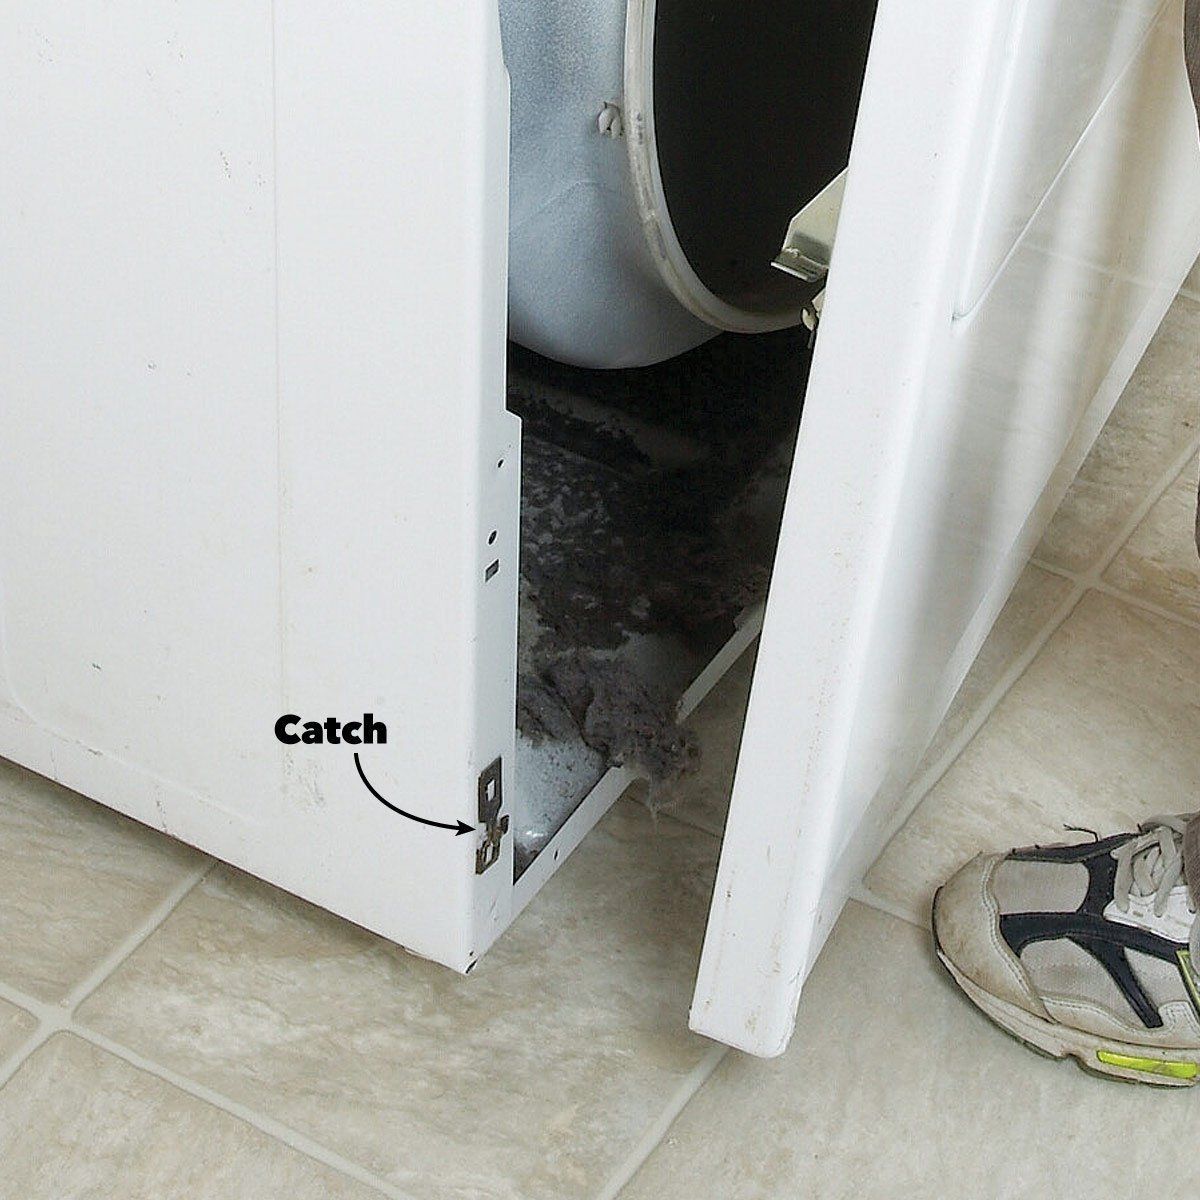 Dryer Lint Cleaning Tips Dryer lint cleaning, Cleaning